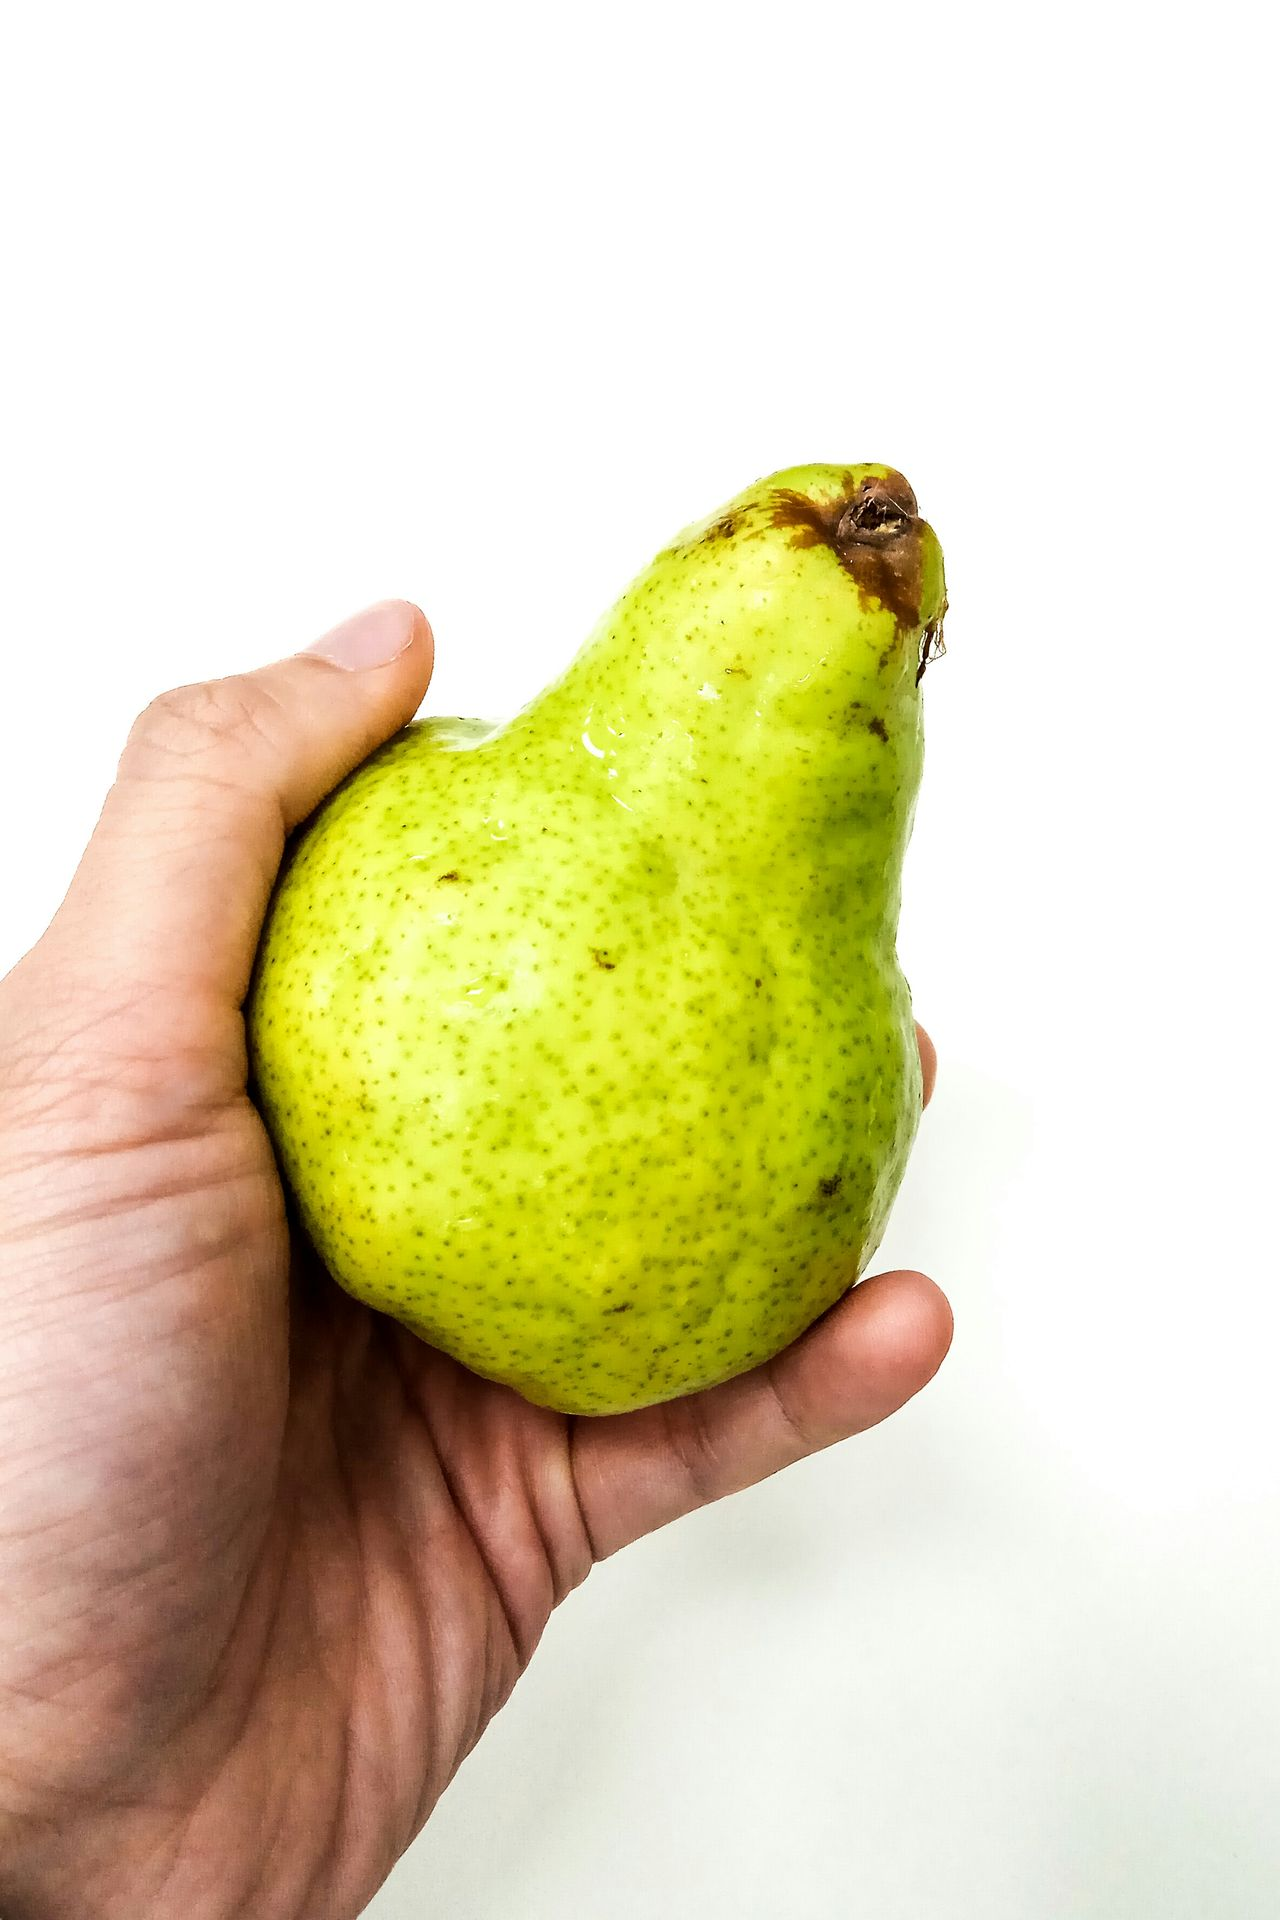 I Have A Pear Today Human Hand Human Body Part One Person Food And Drink Holding Food Fruit Freshness White Background Healthy Eating Leisure Activity Close-up People Adults Only One Man Only Day Adult Urban Lifestyle No People Wealthy Adults Only Wealthy Lifestyle Indoors